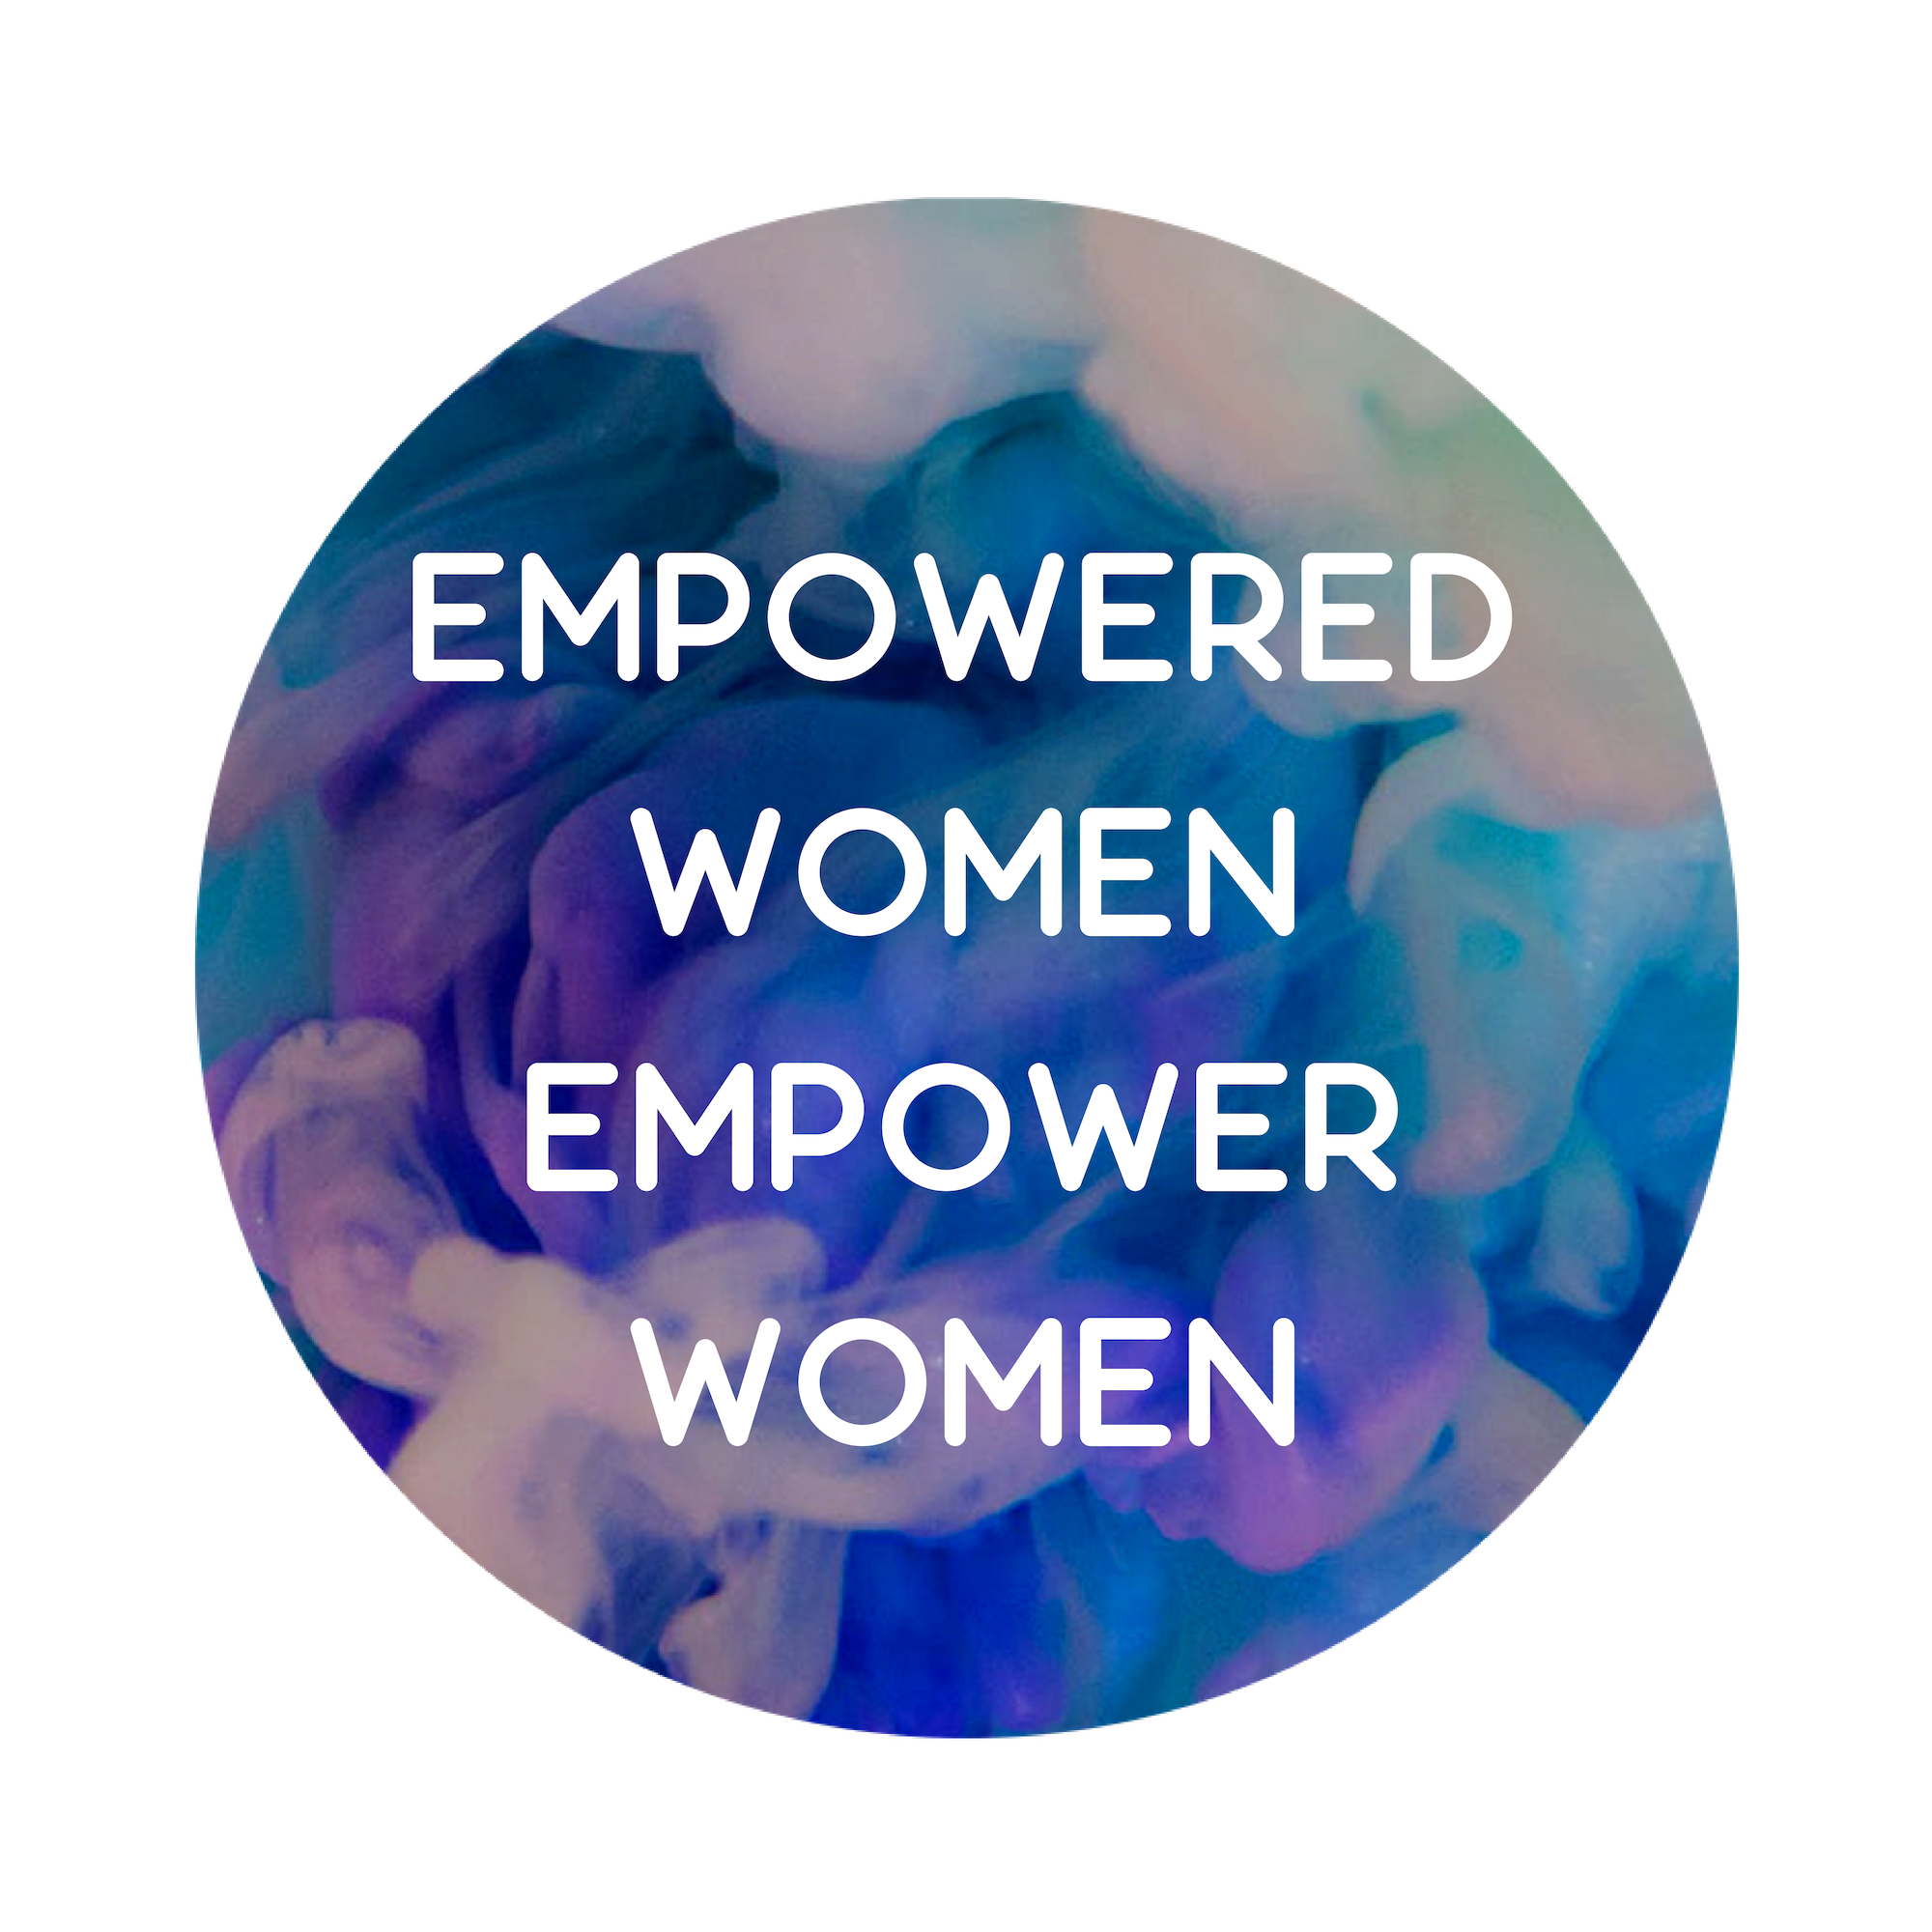 ATLAS Empowered Women Empower Women.png